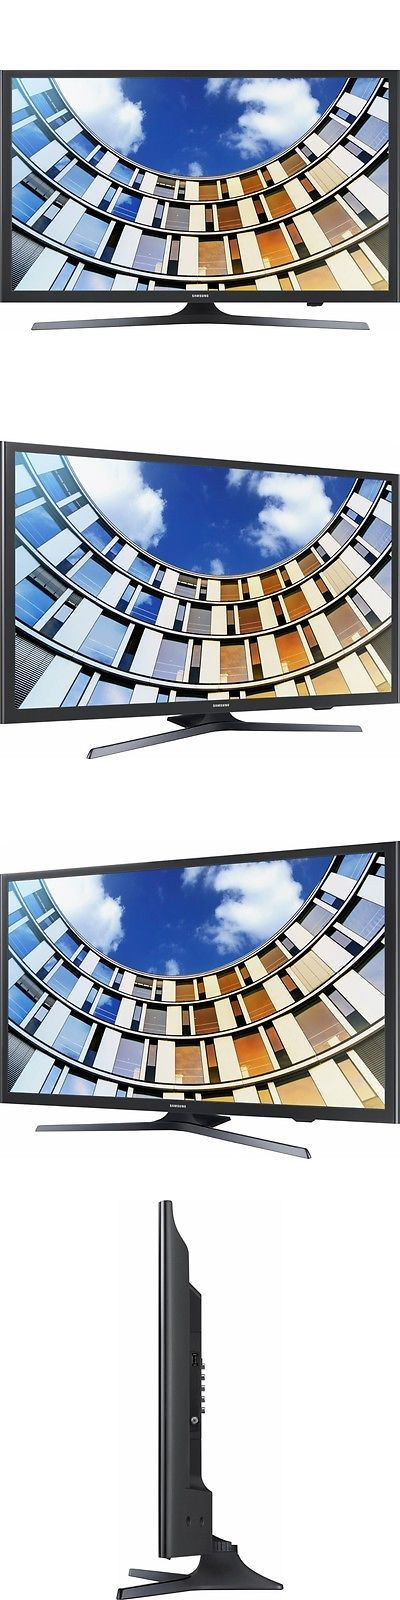 Televisions: Samsung Un49m5300- 49-Inch Full Hd Smart Led Tv (2017 Model) -> BUY IT NOW ONLY: $544.99 on eBay!